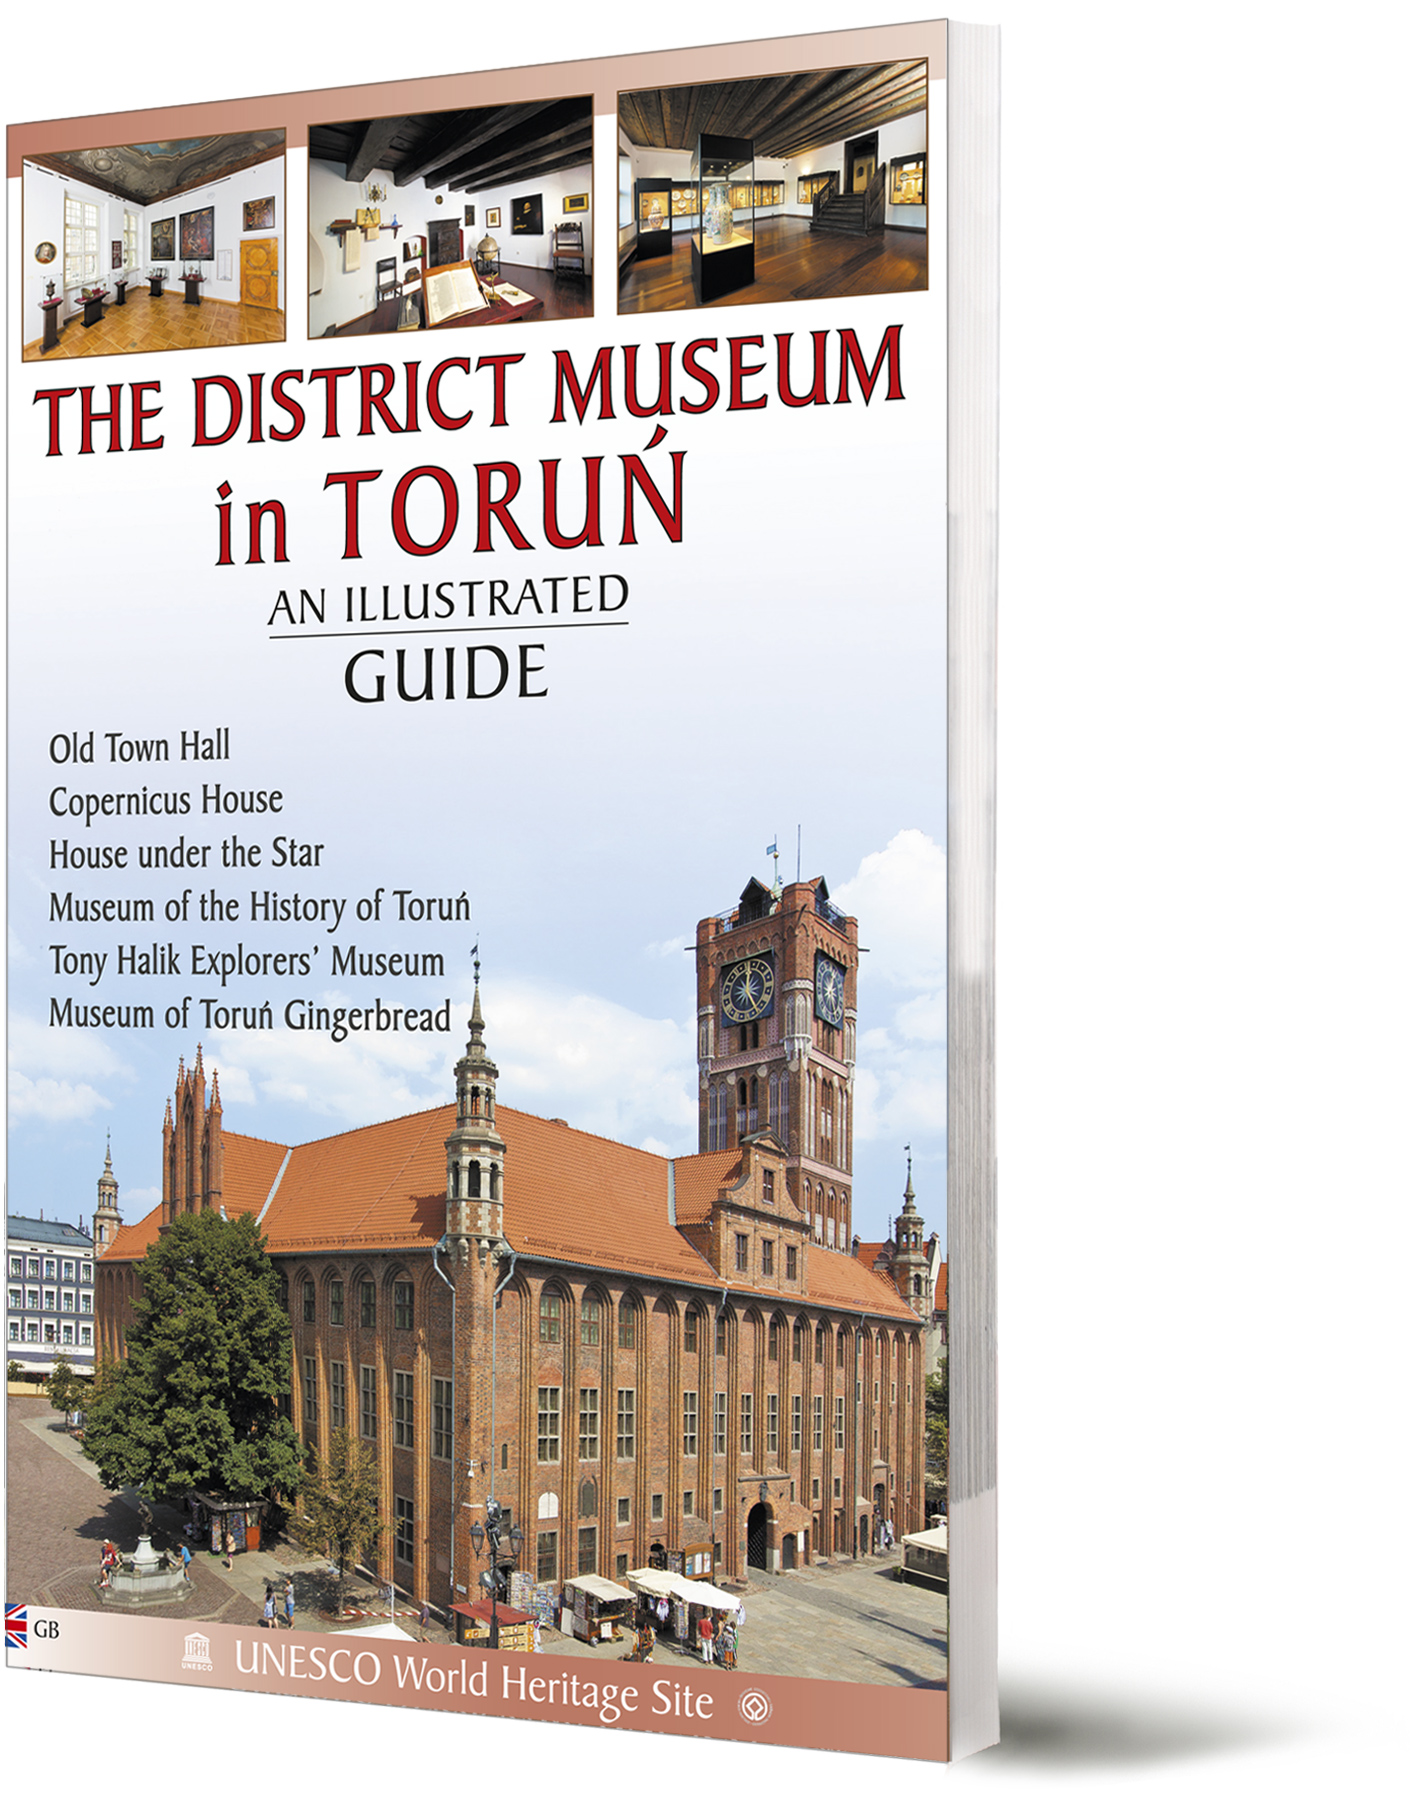 Torun District Museum illustrated guidebook - front cover